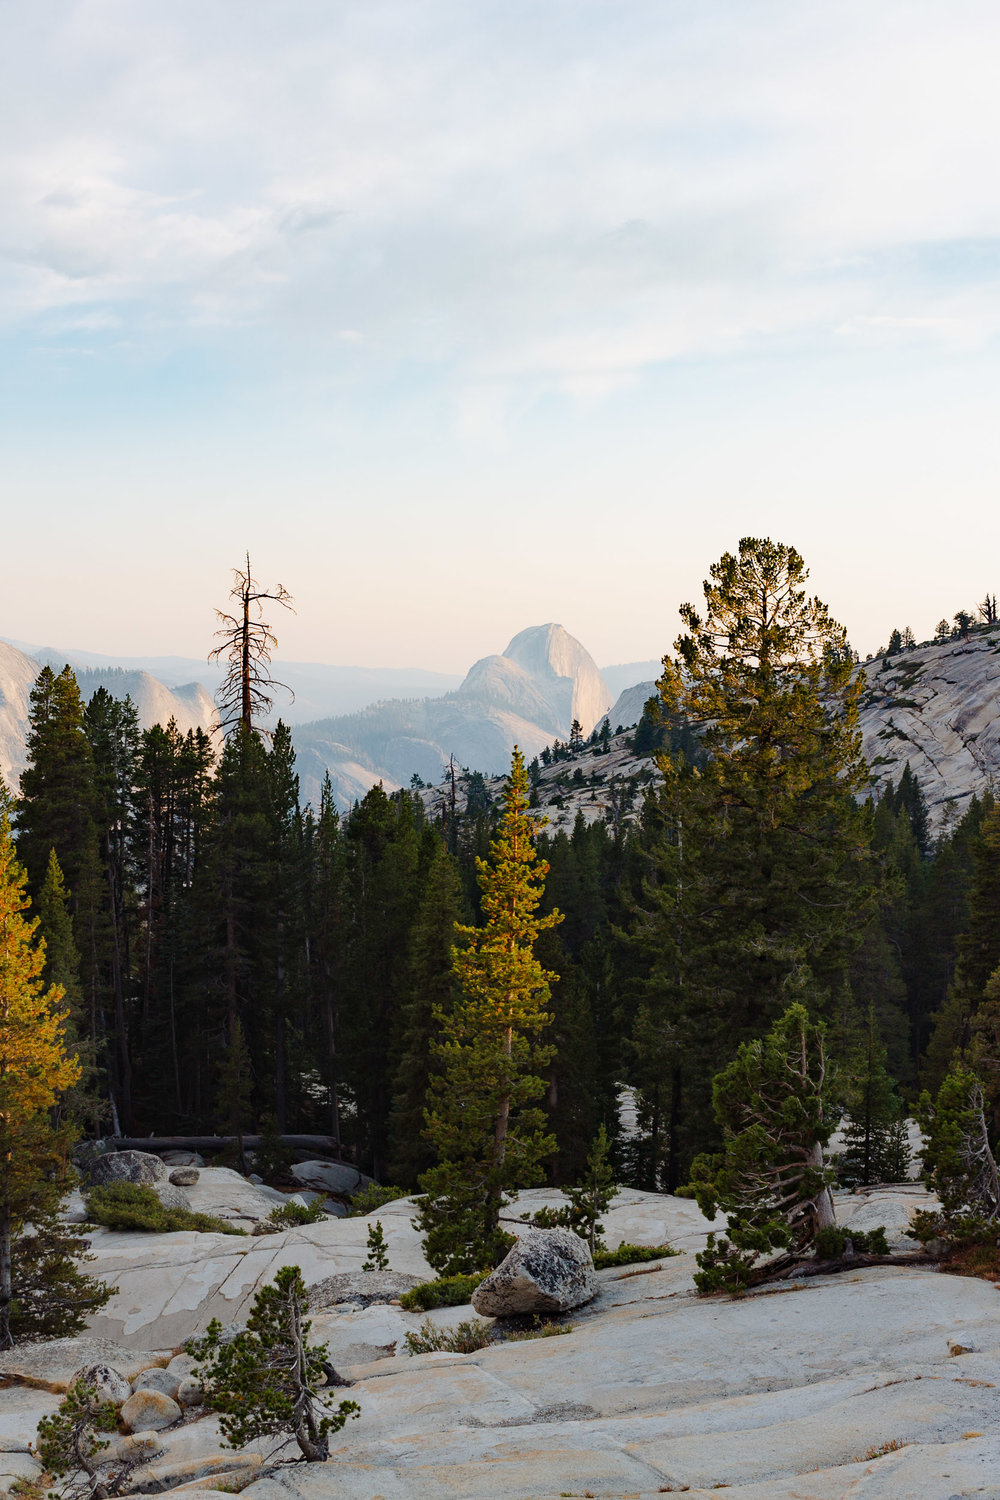 20160820_20160821_YOSEMITE_NATIONAL_PARK-14.jpg